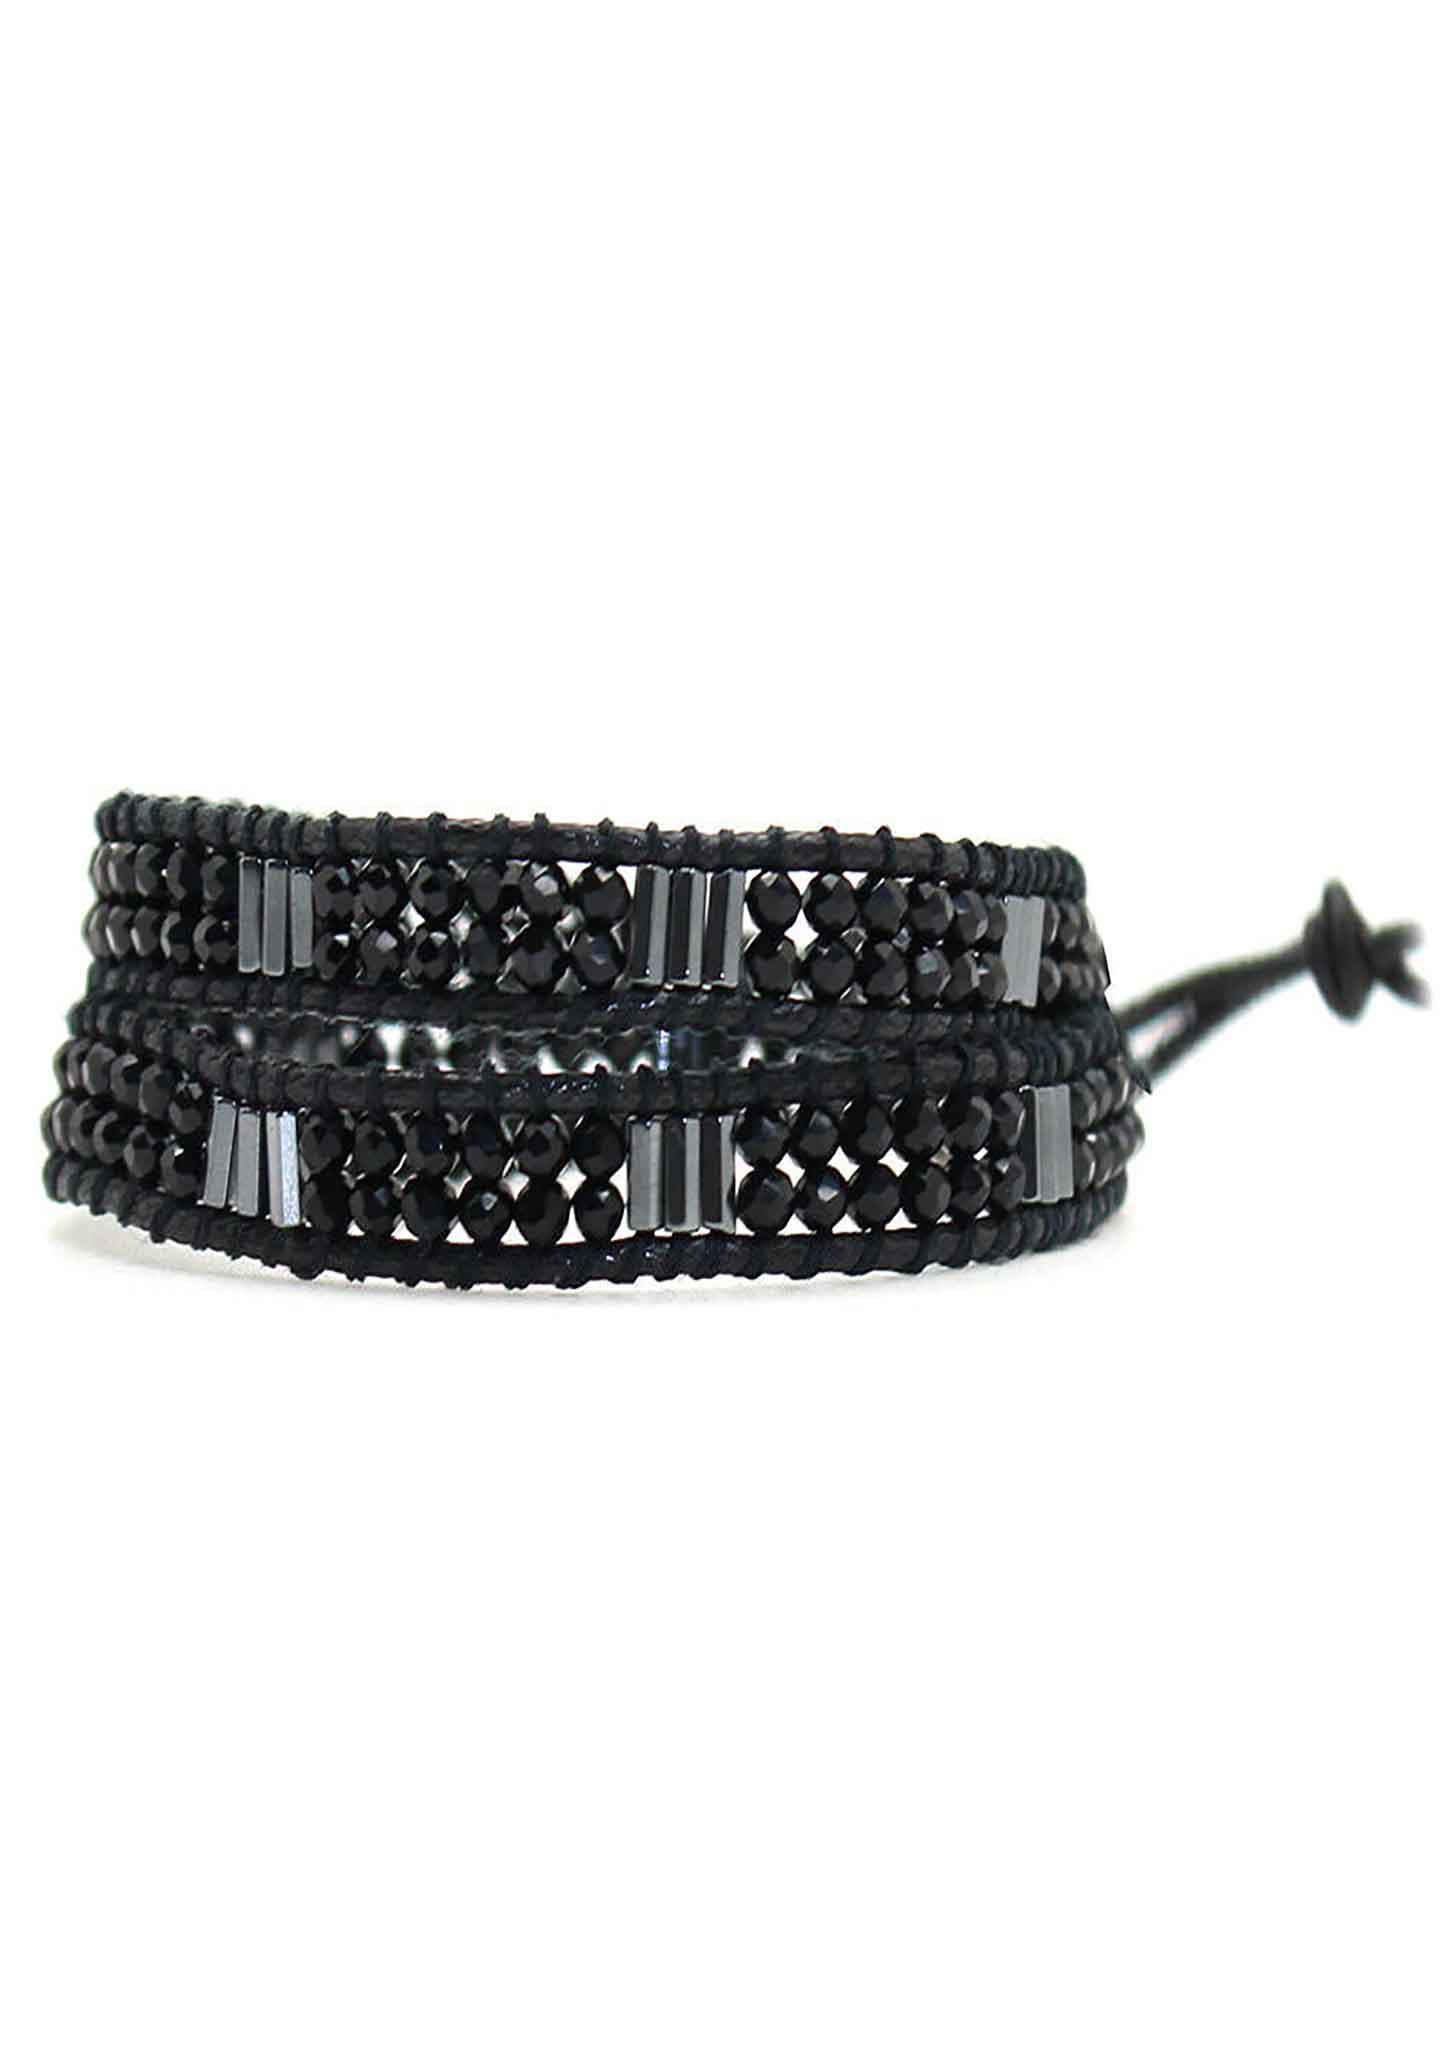 X Katie Soleil Melody Double Wrap Beaded Bracelet in Black